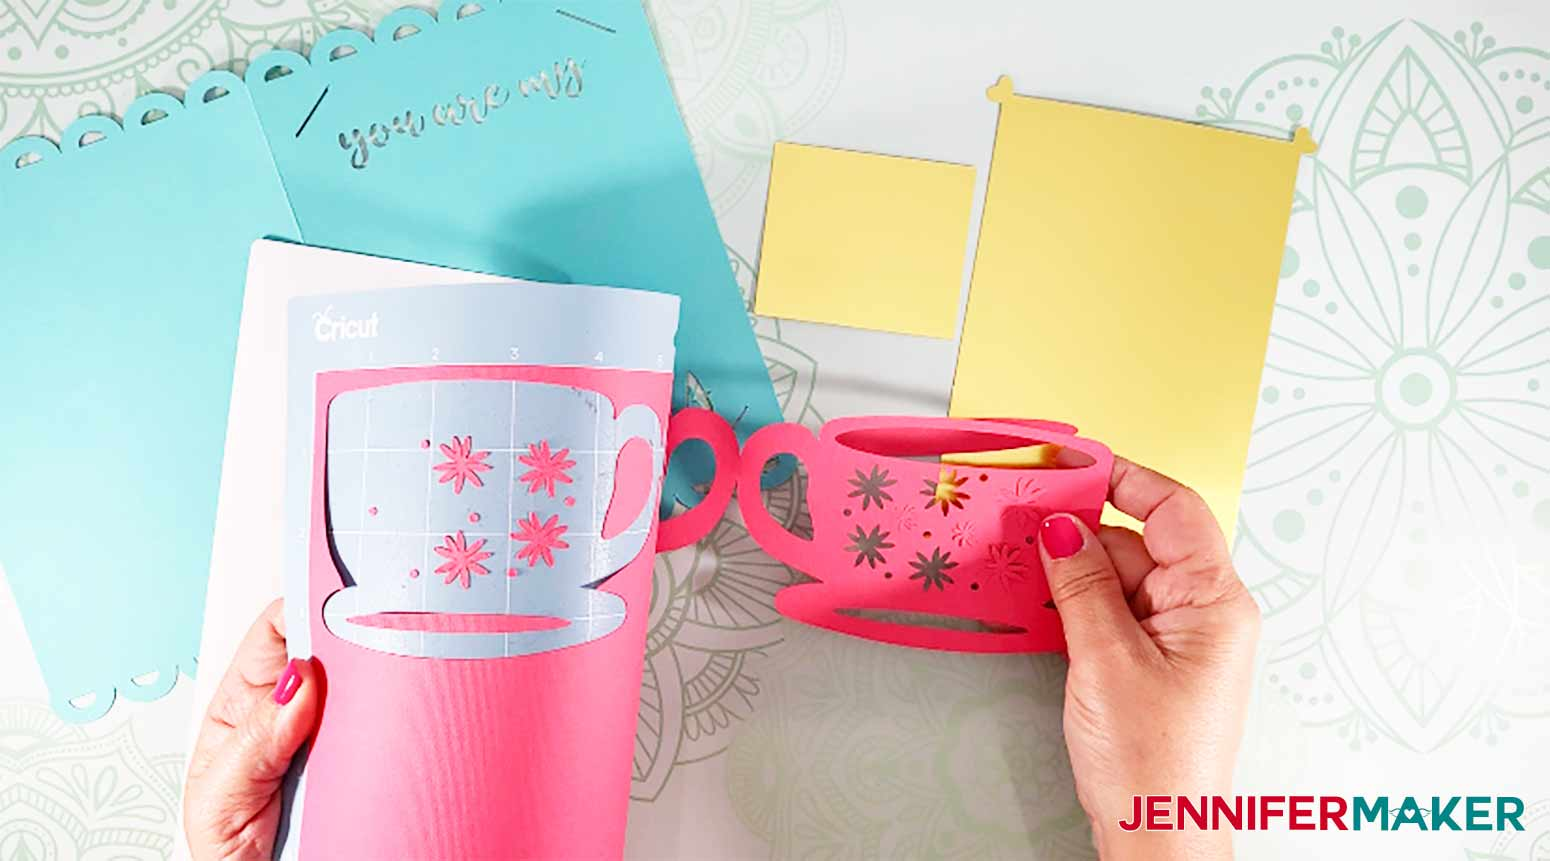 You-Are-My-Cup-Of-Tea-Card-JenniferMaker-Peeling-Cup